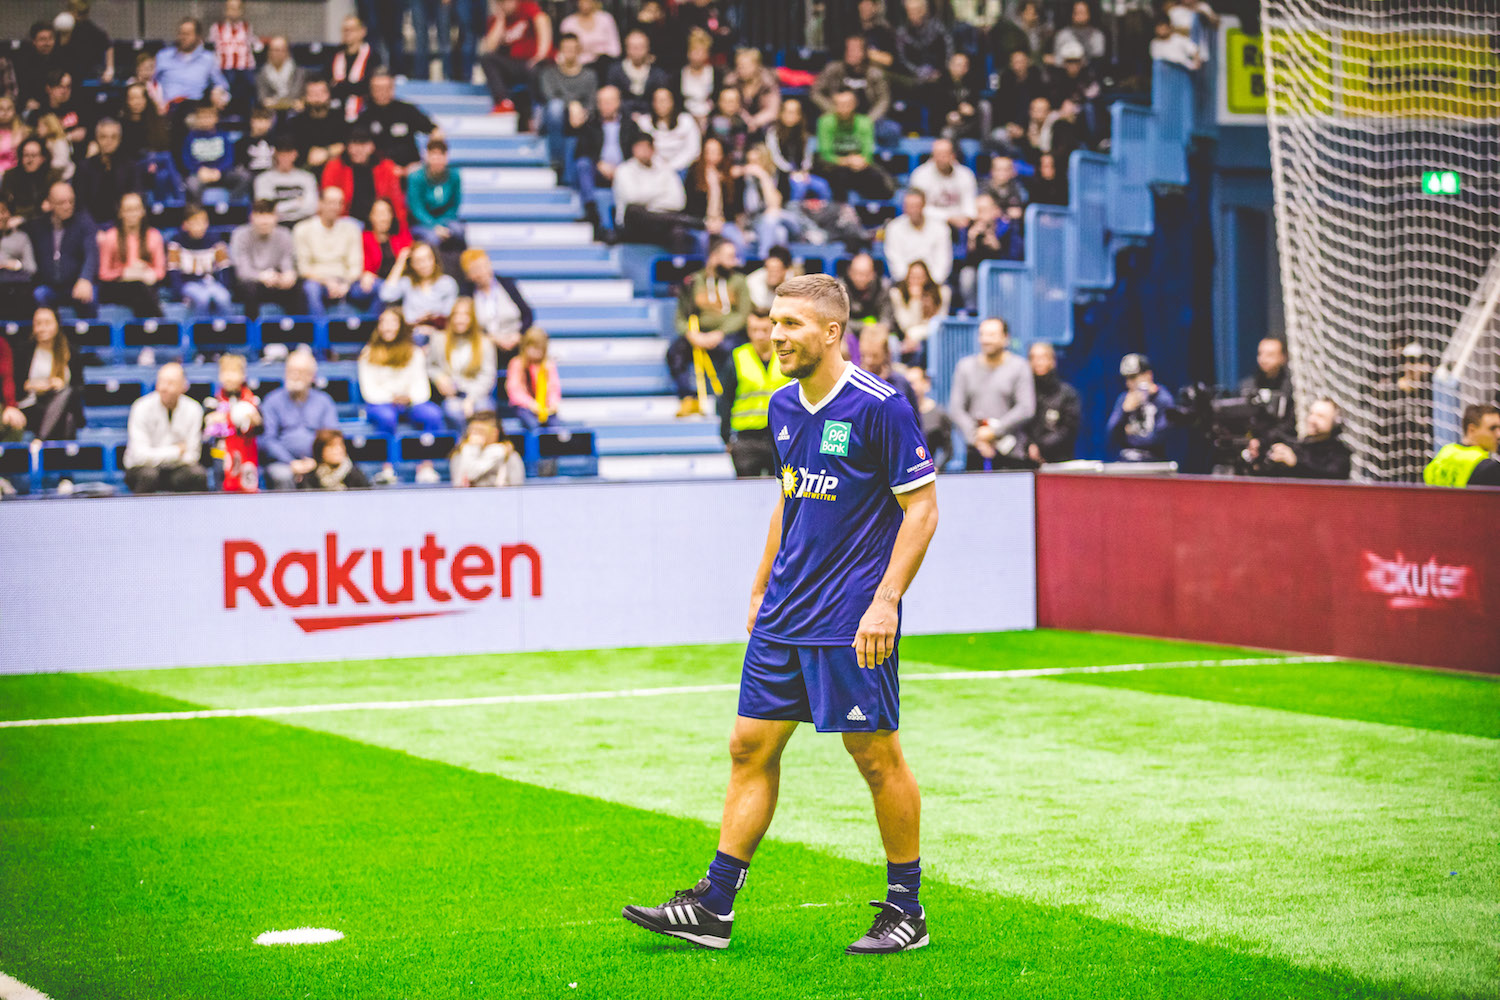 Kicking for a good cause: Lukas Podolski and Rakuten host charity soccer cup in Germany